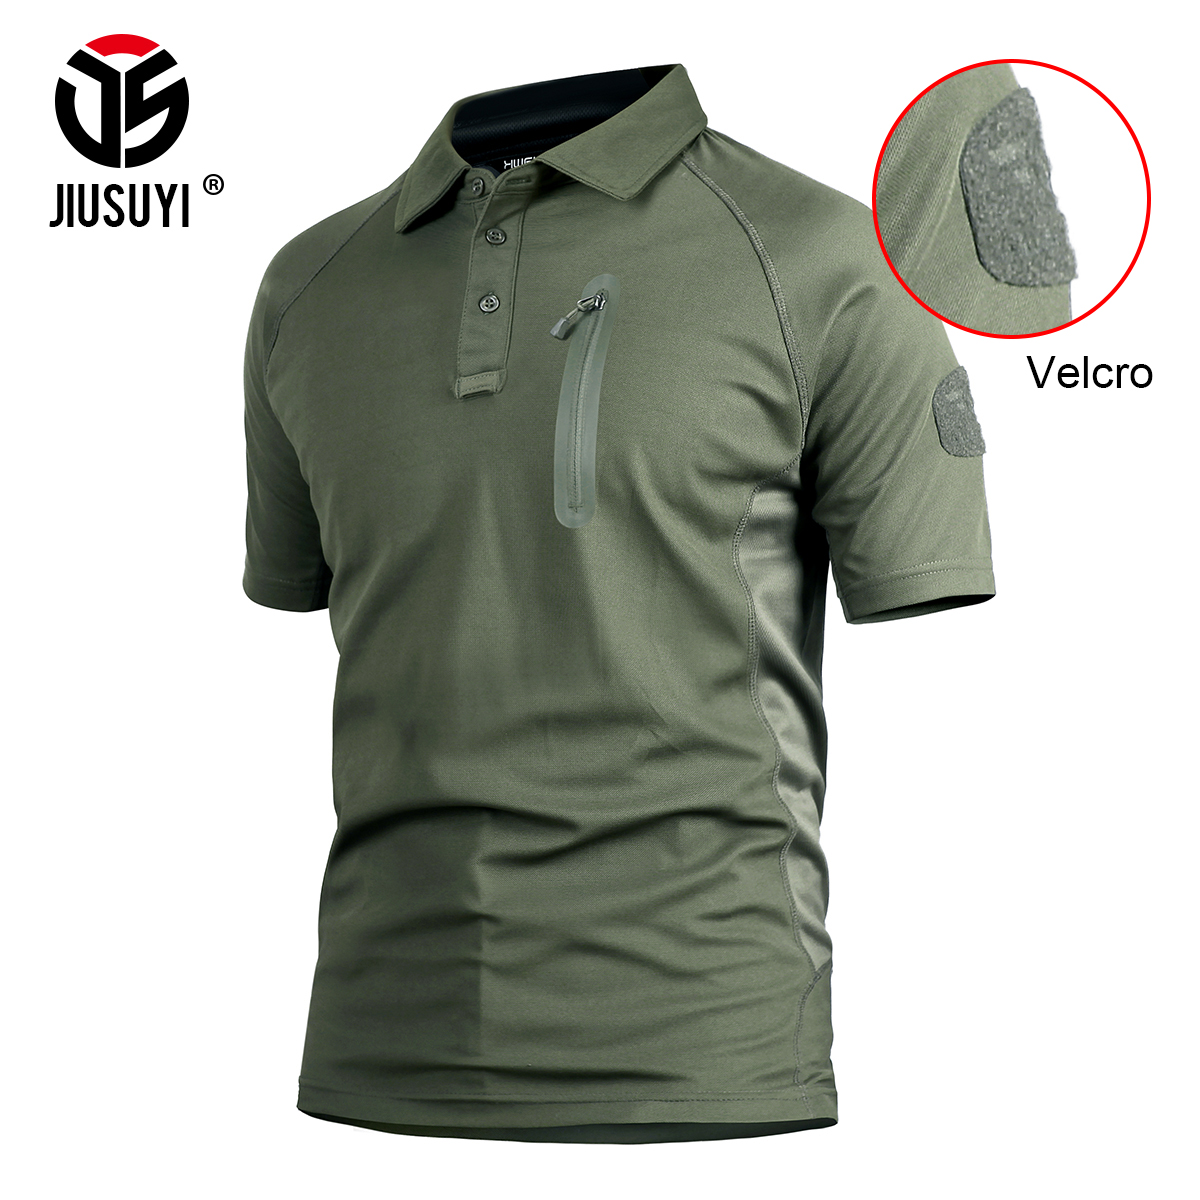 Tactical T Shirt for Men Military Army Summer Quick Dry Camouflage Green Clothes with Pocket Paintball Short Sleeve Breathable